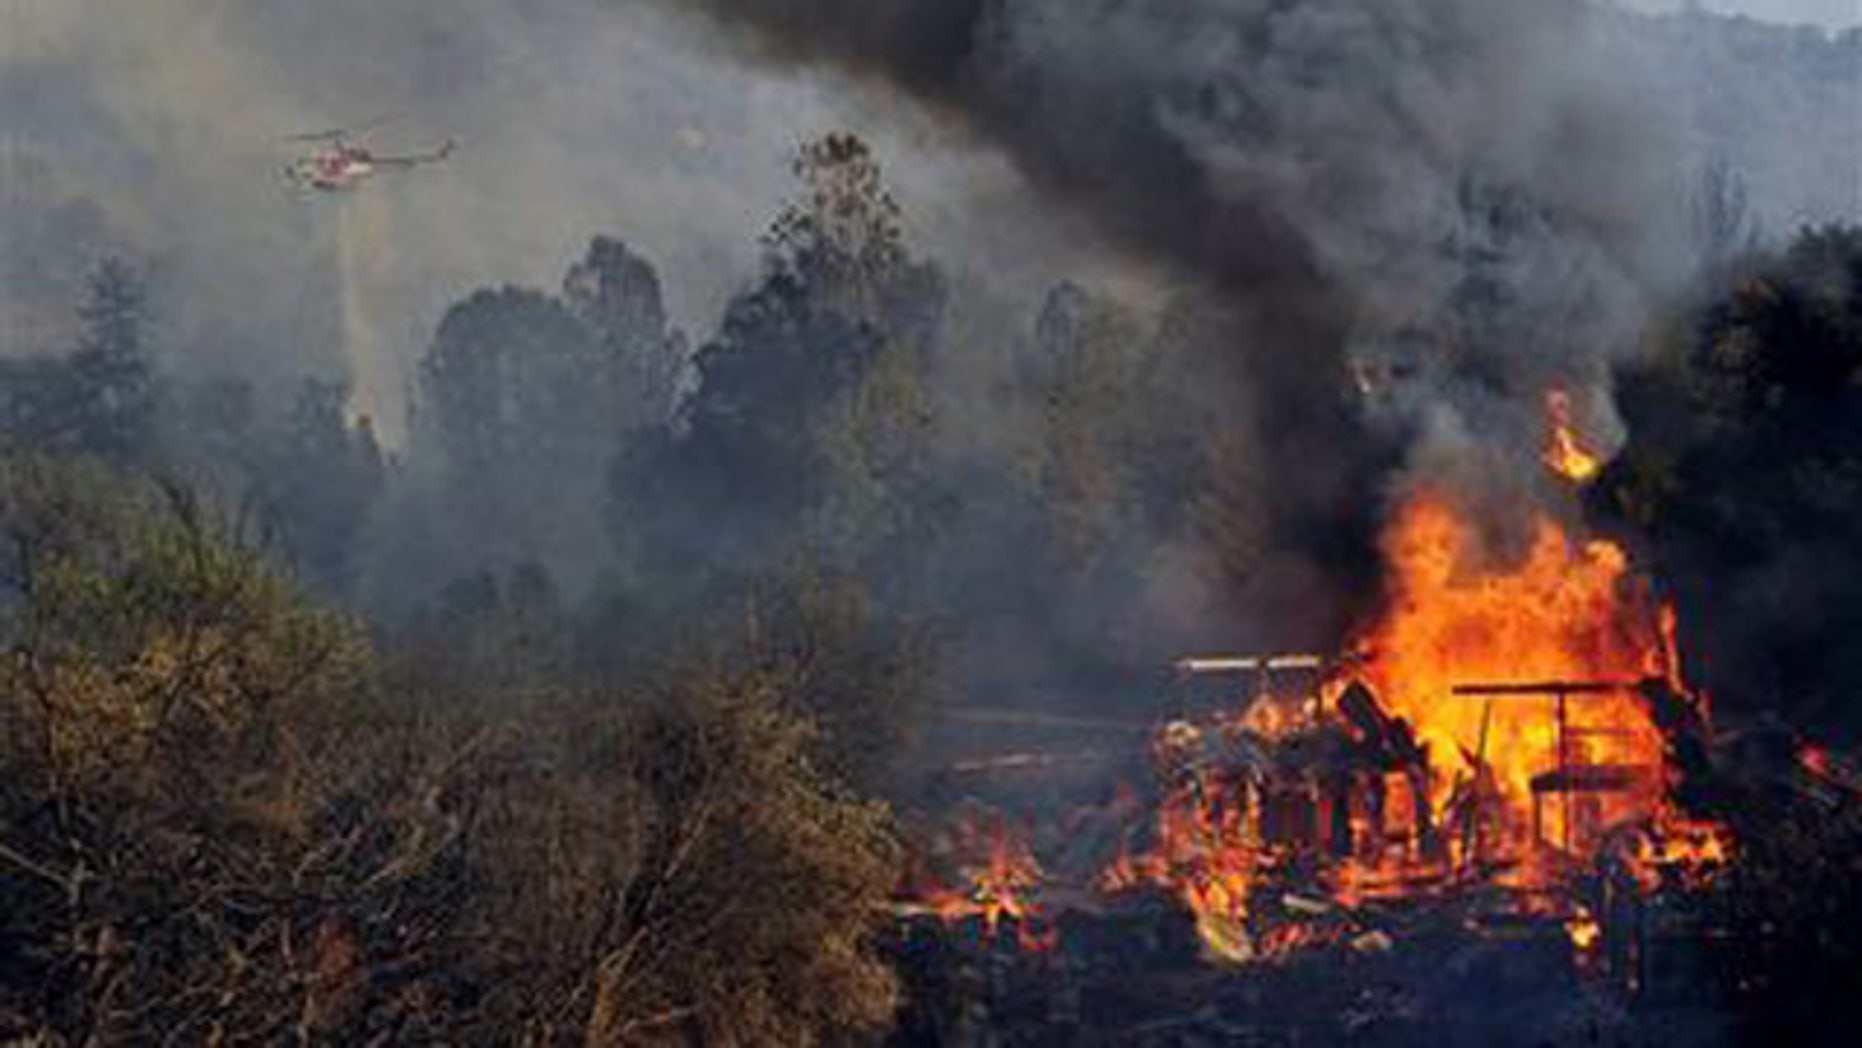 File -- August 18, 2014: A structure burns along Highway 41 in Oakhurst, Calif.  (AP Photo/The Fresno Bee, Eric Paul Zamora)